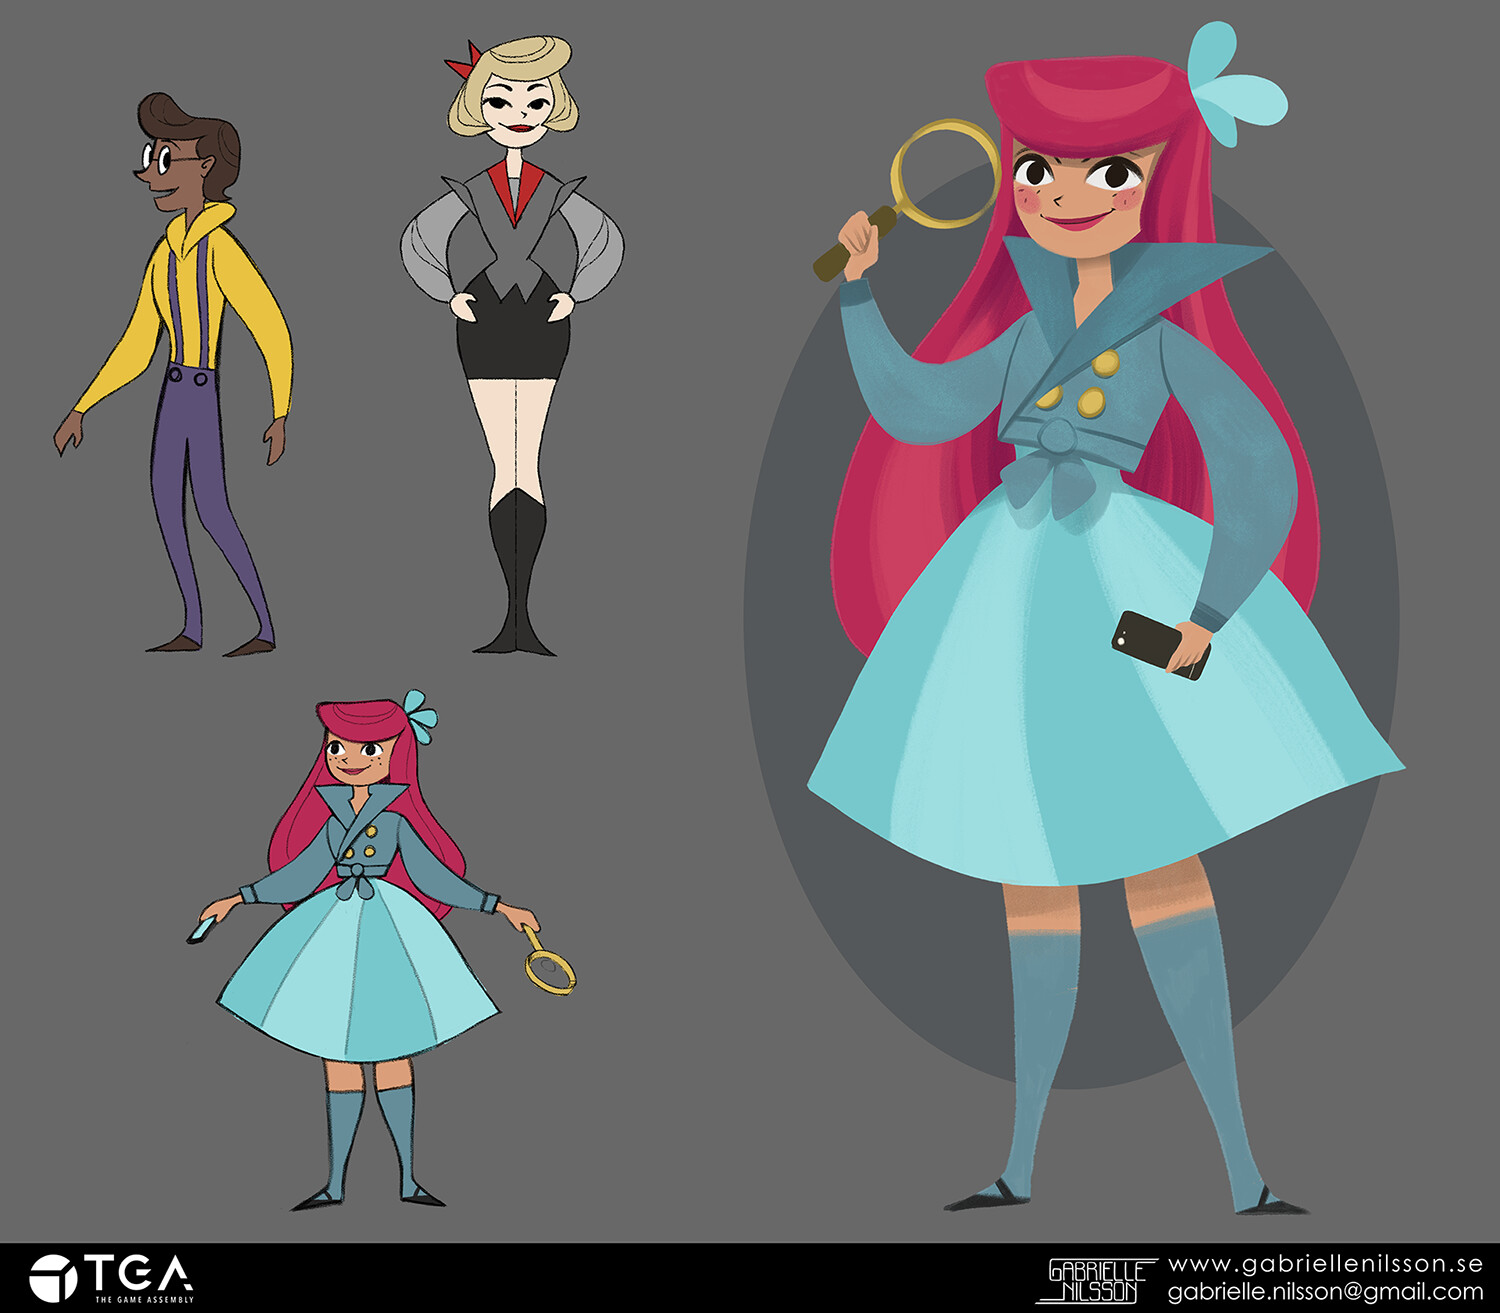 Character concept art assignment where we had to adapt a specific style. I got assigned Mary Blair as my style reference.